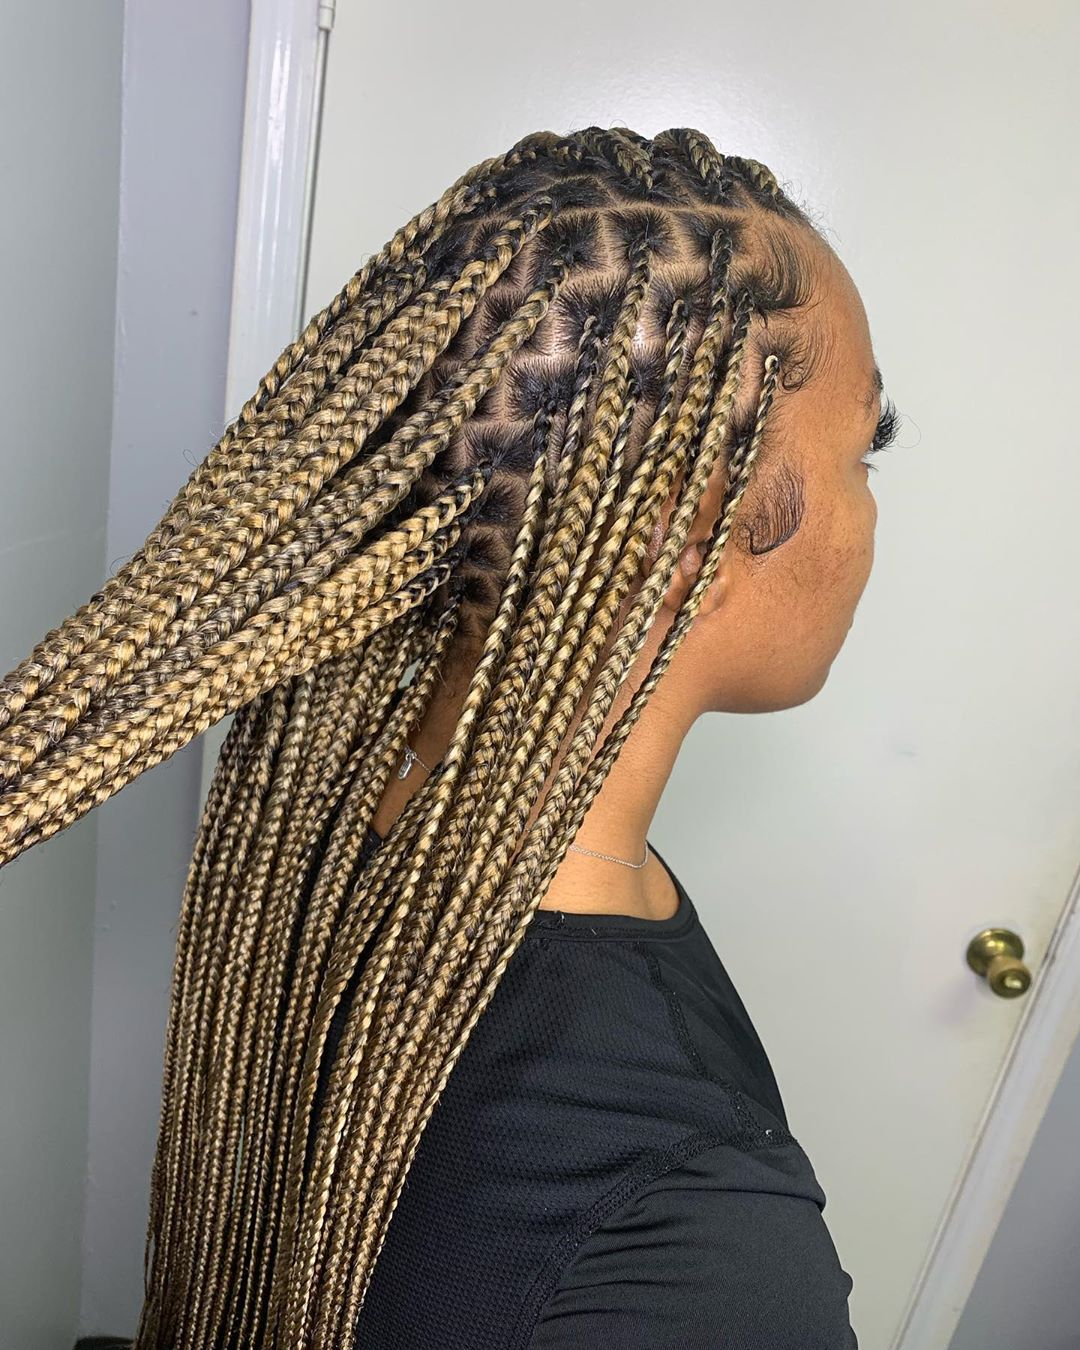 Hairstyles 2020 Female Braids. Hi dearies. Check out these amazing hair styles that will give you a stylish, stunning and breathtaking appearance. #longboxbraids